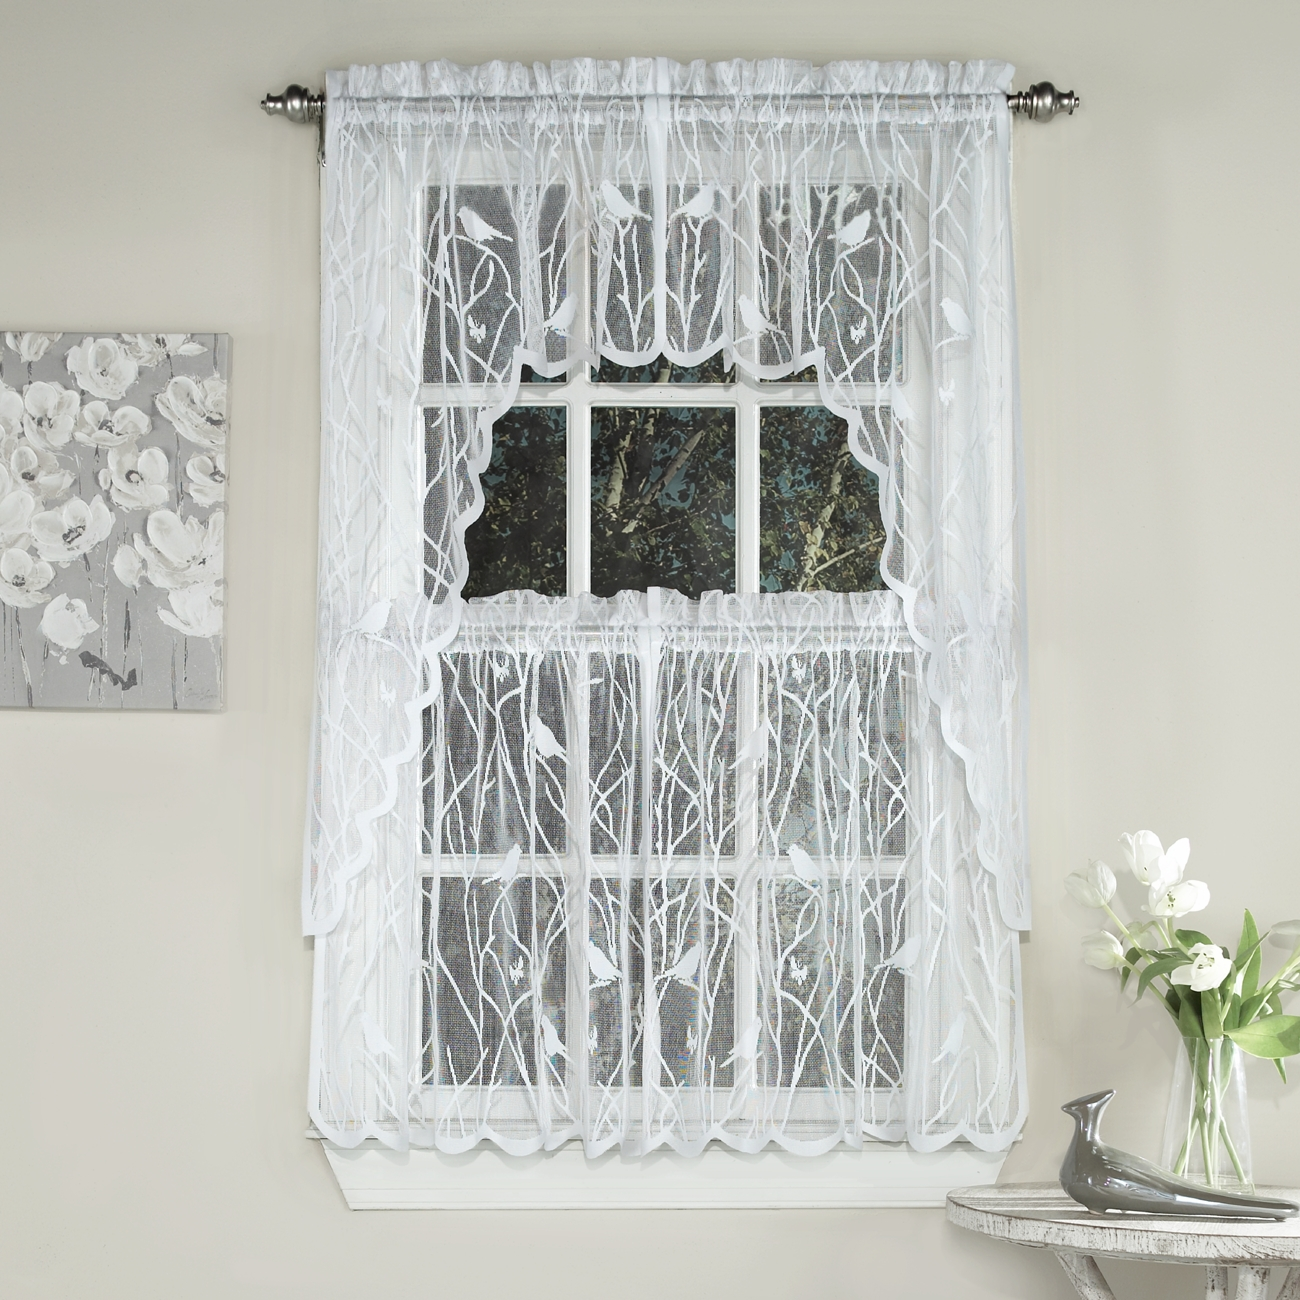 Ordinaire Songbird Sheer Kitchen Curtains